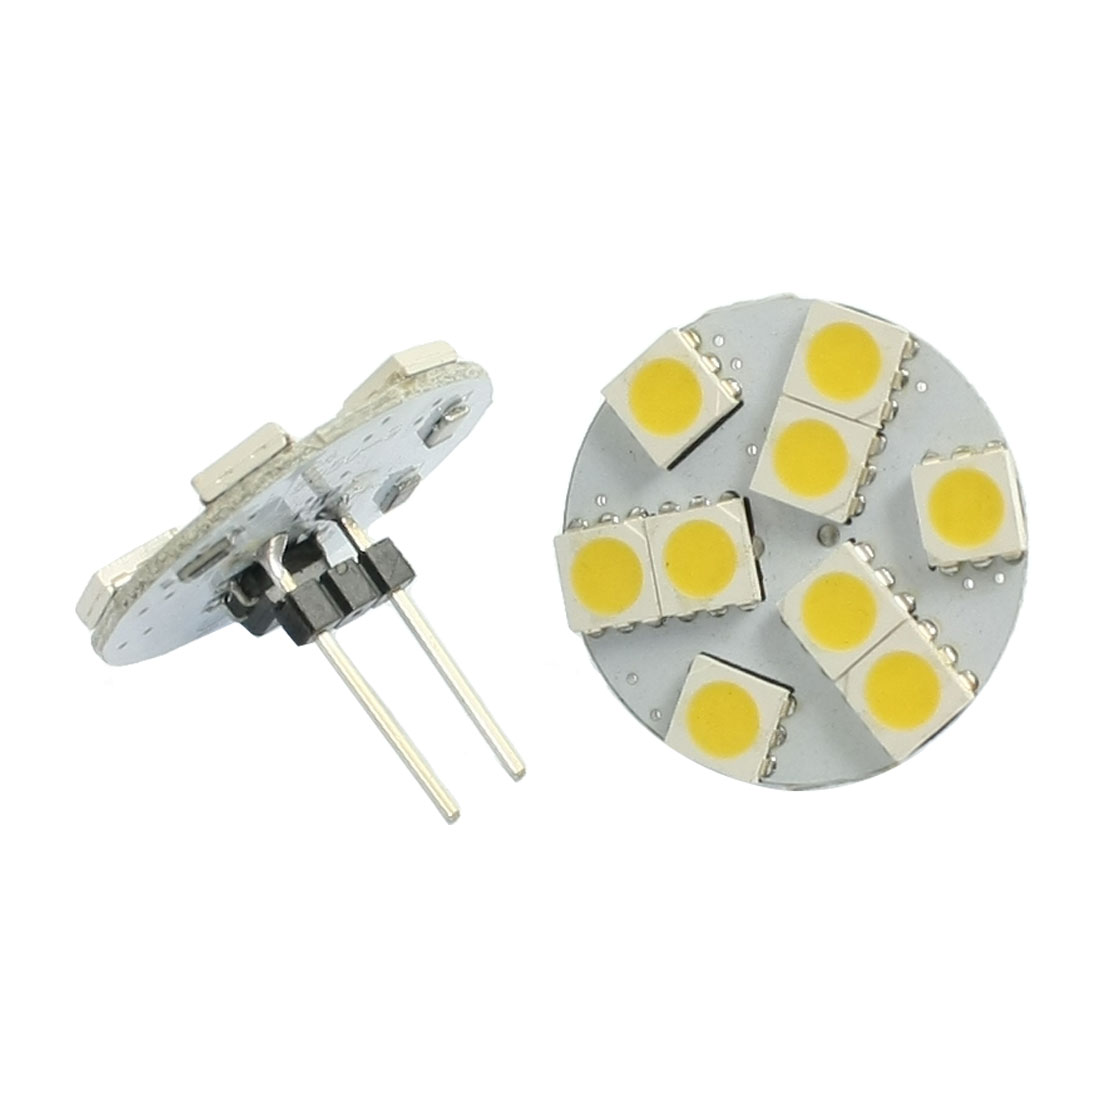 2 x Vertical Pin G4 Warm White 5050 SMD 9-LED Bulb Light Dashboard Lamp